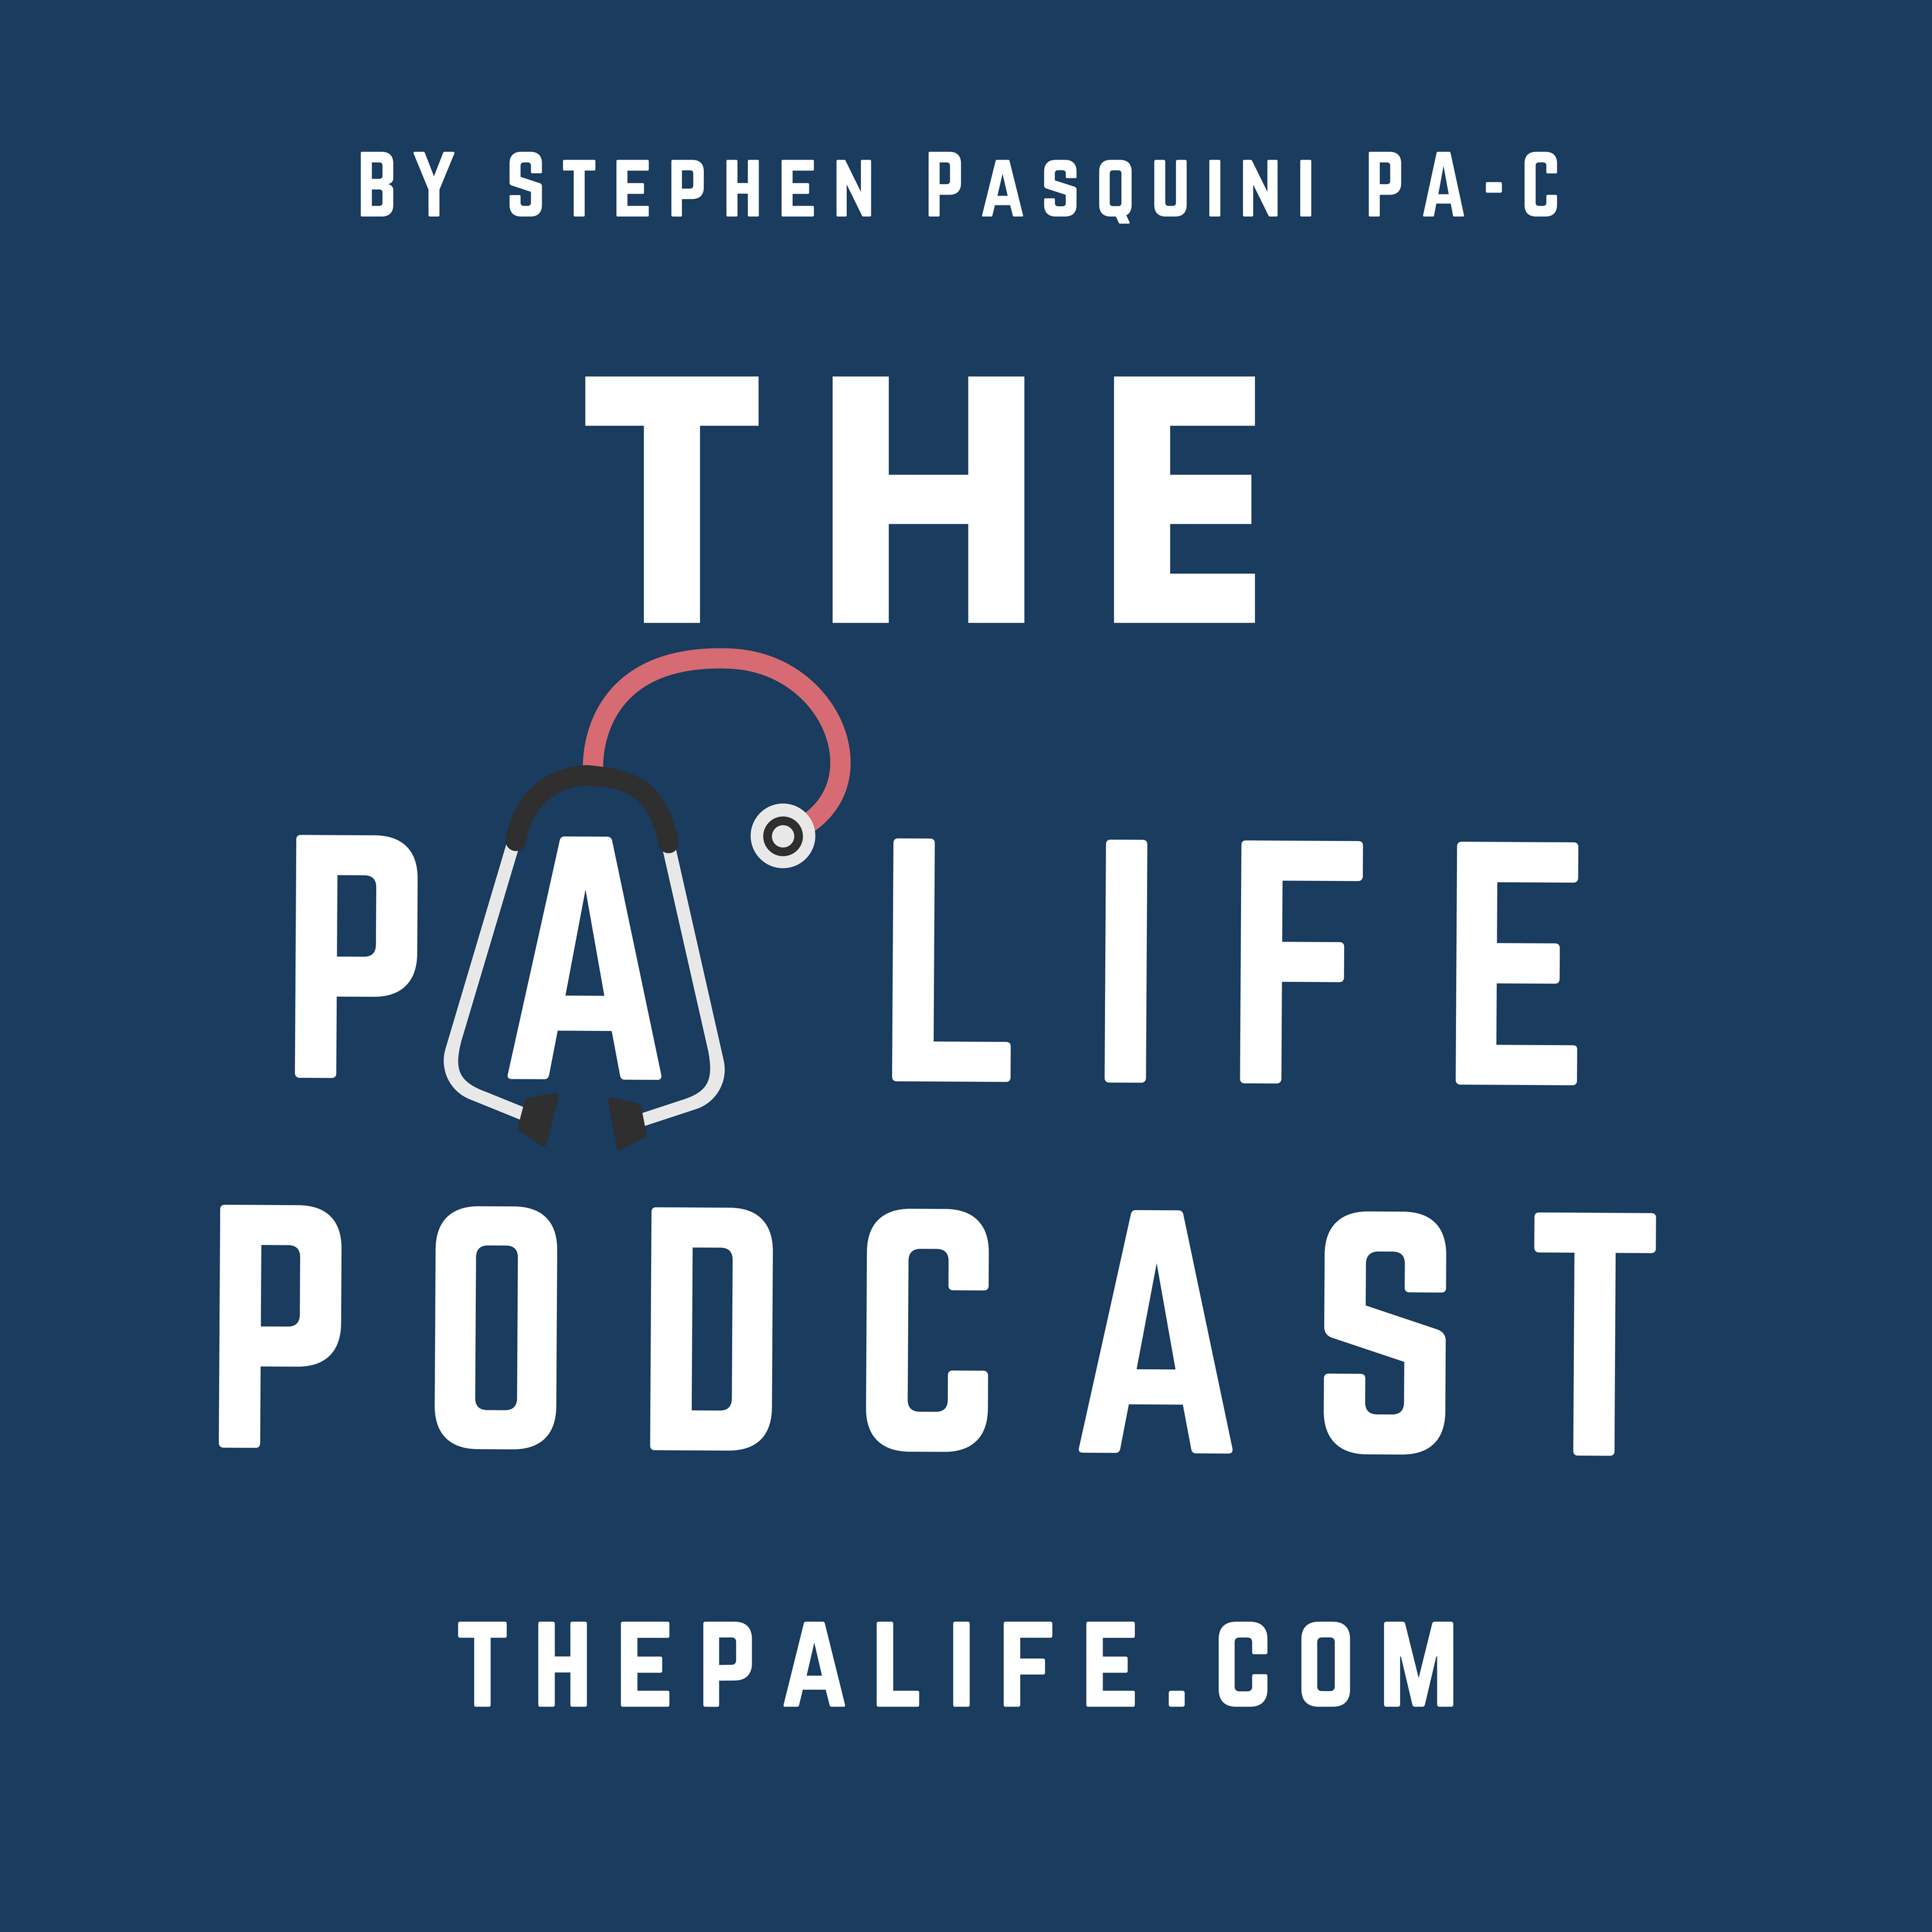 The Physician Assistant Life - Everything Physician Assistant. A Podcast for Practicing PAs, Pre-Physician Assistants and PA Students.